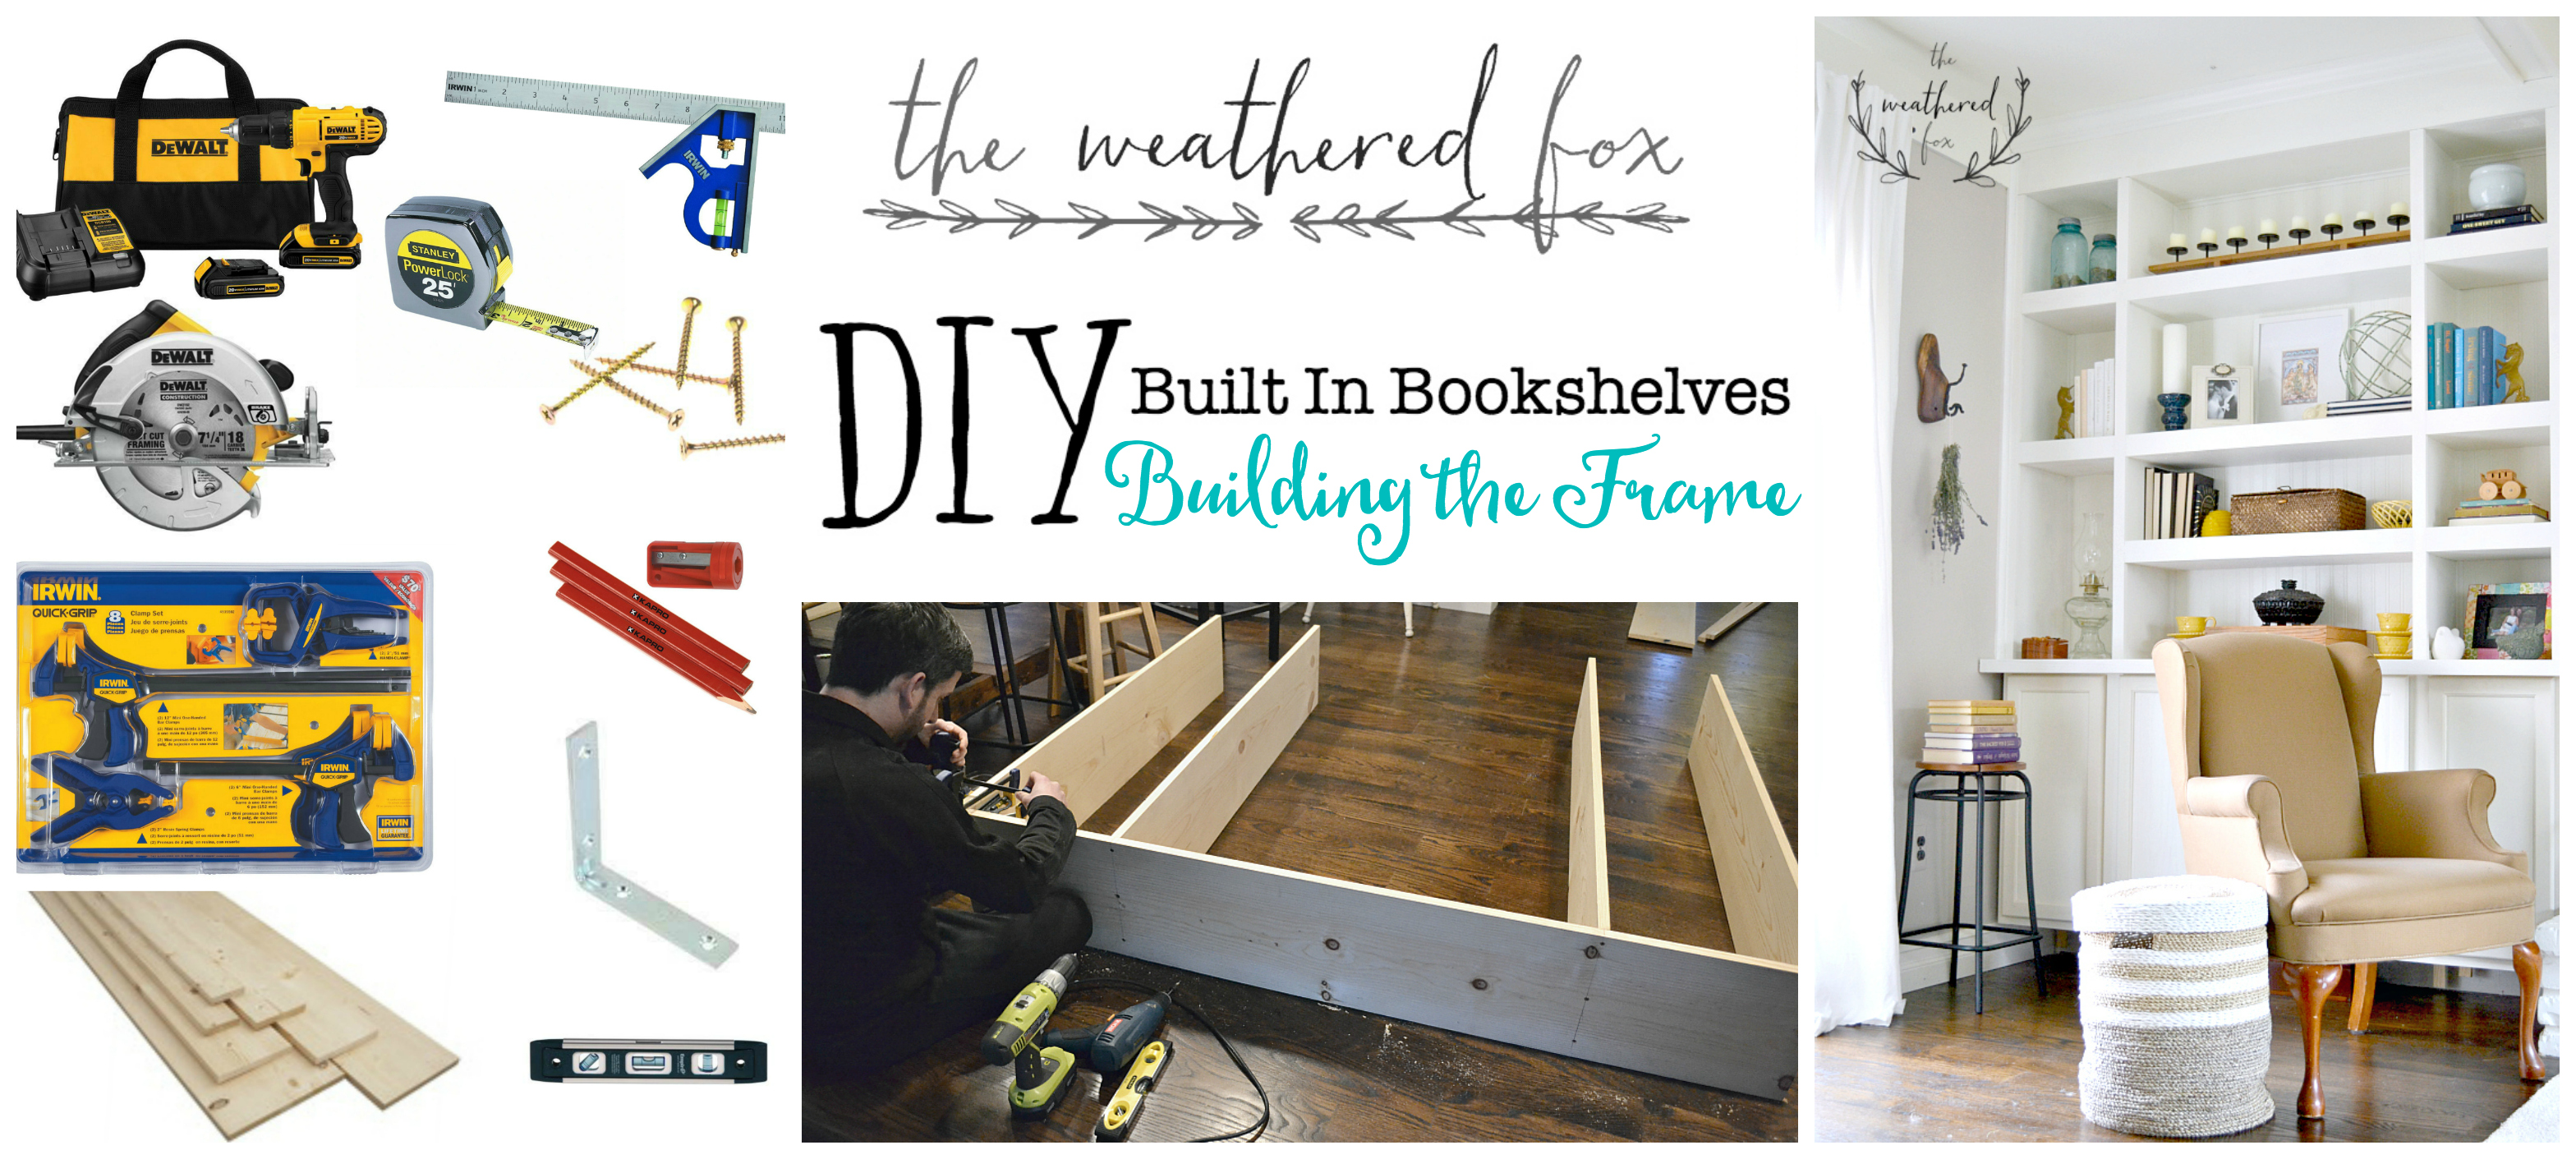 Built In Bookshelves Part Two. Building the frame tutorial with the weathered fox